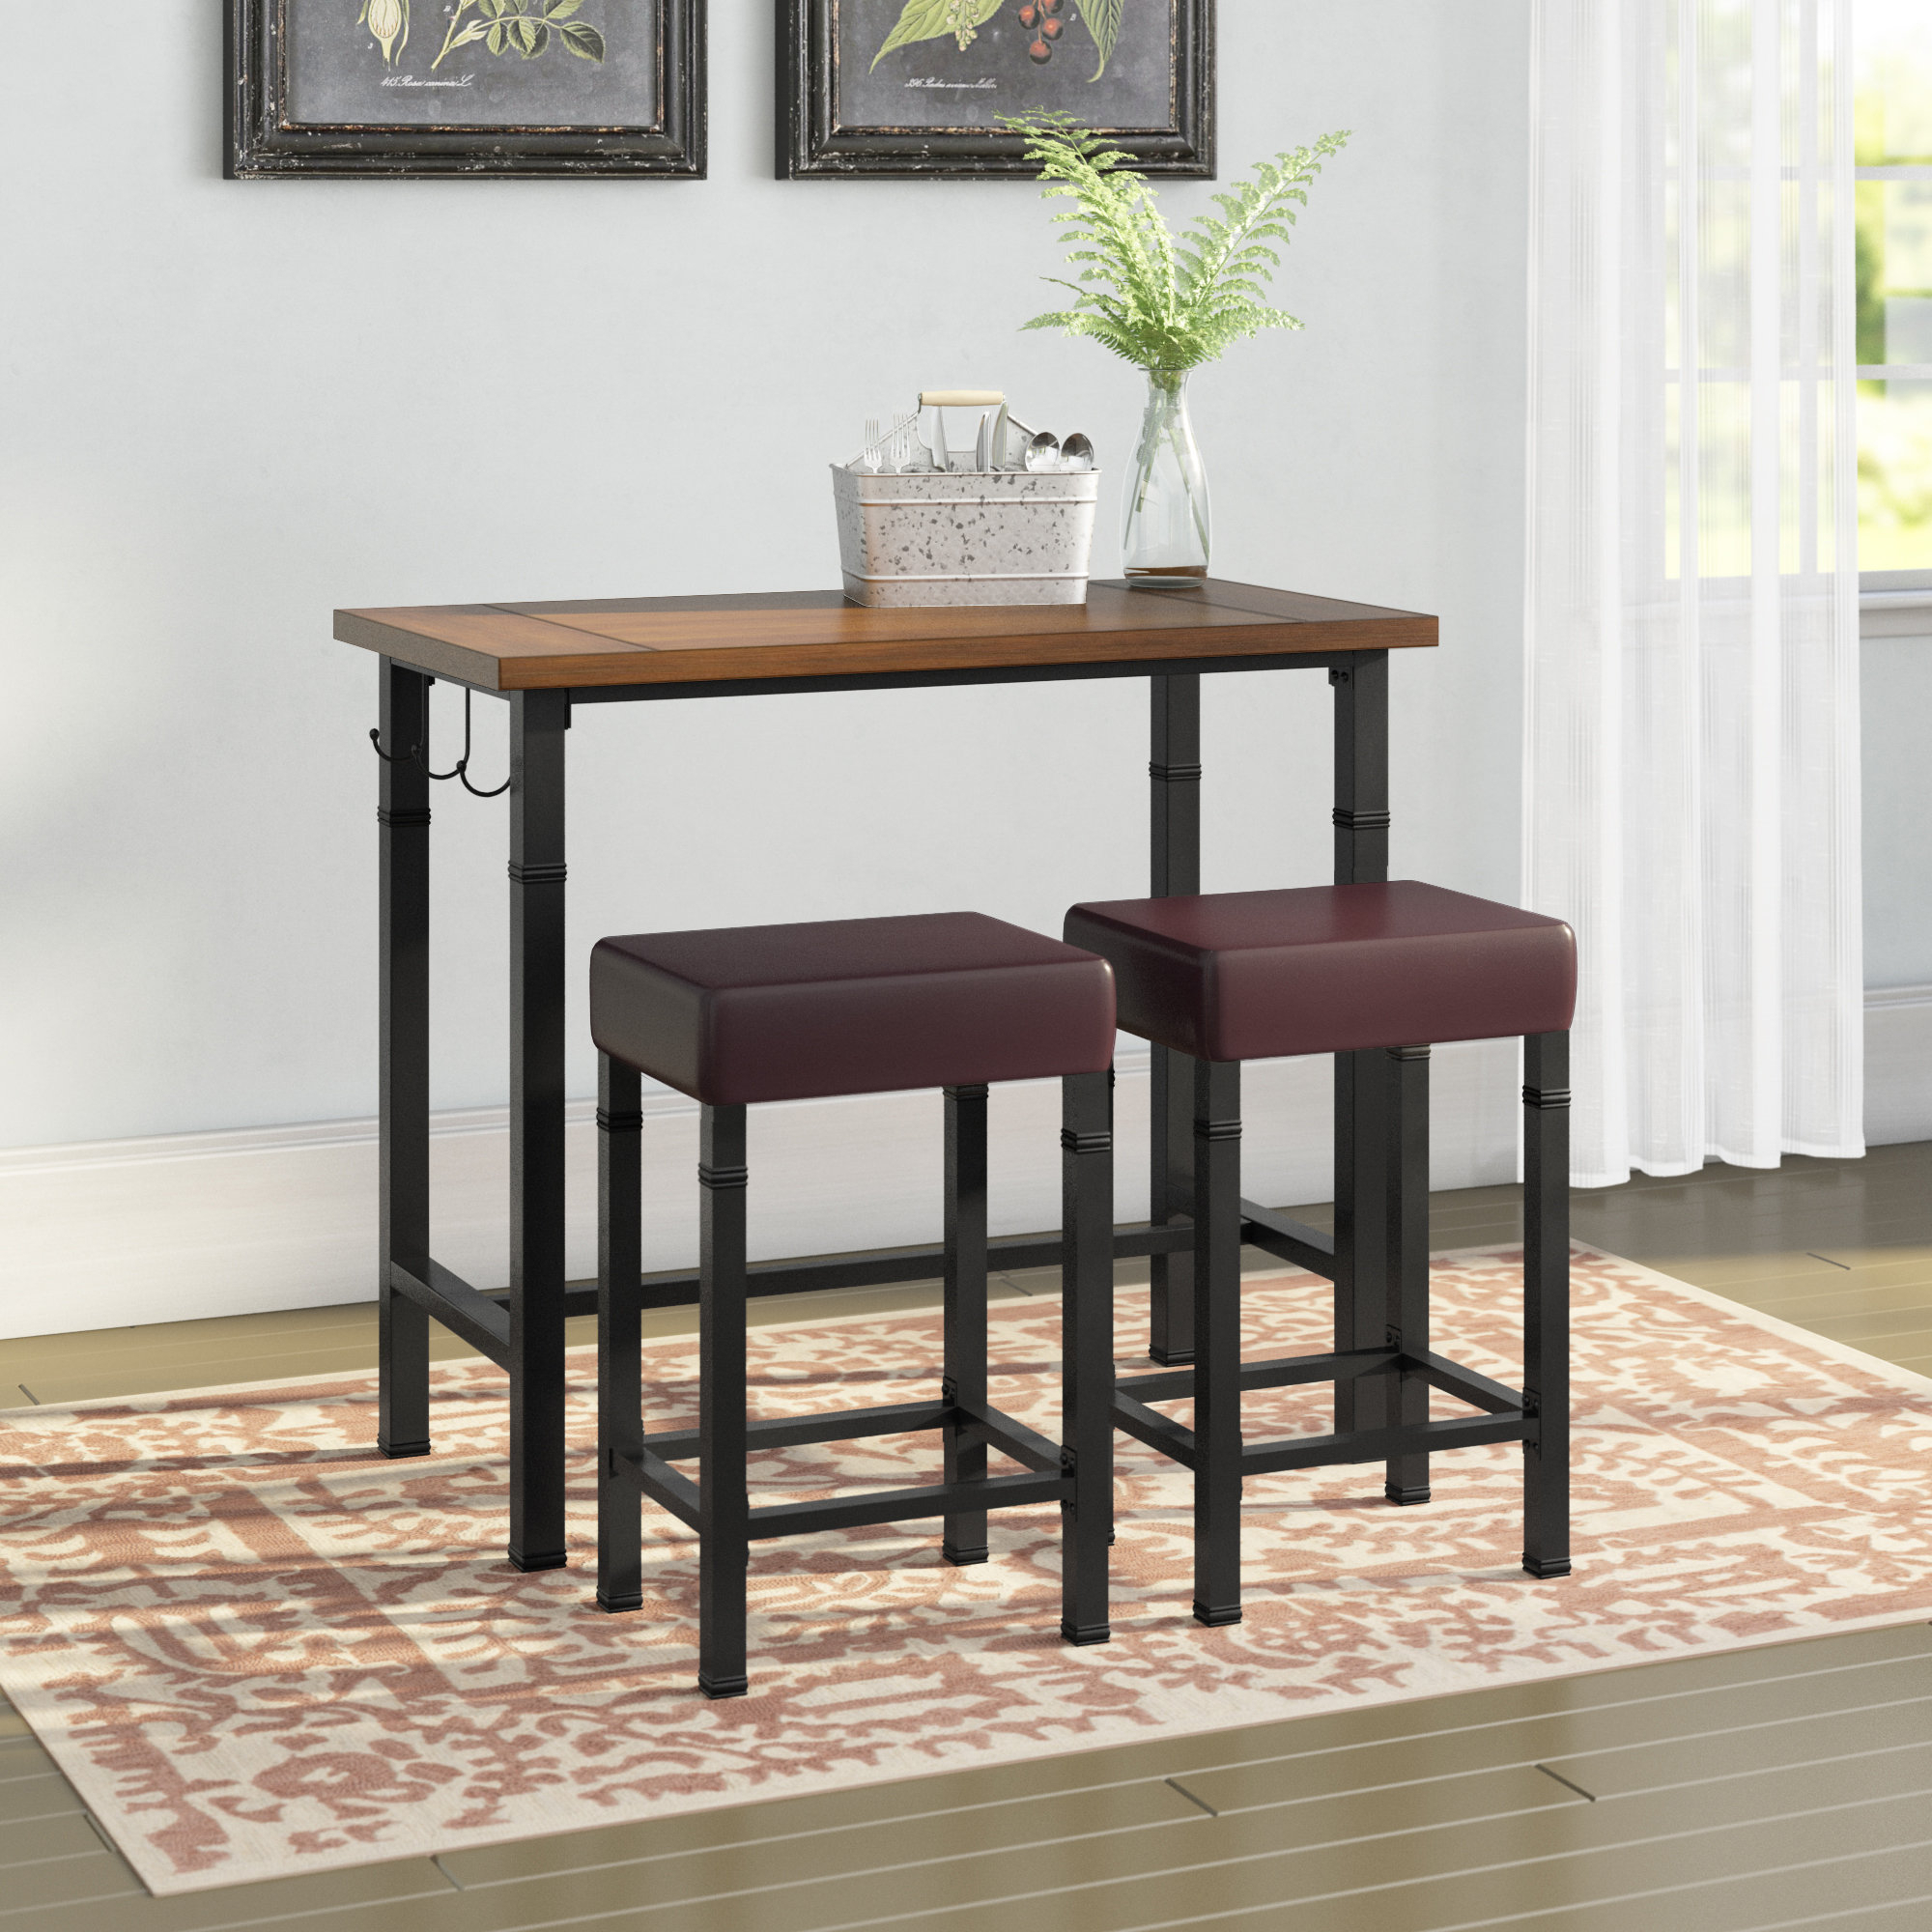 Laurel Foundry Modern Farmhouse Sevigny 3 Piece Pub Table Set Pertaining To Newest Springfield 3 Piece Dining Sets (View 9 of 20)